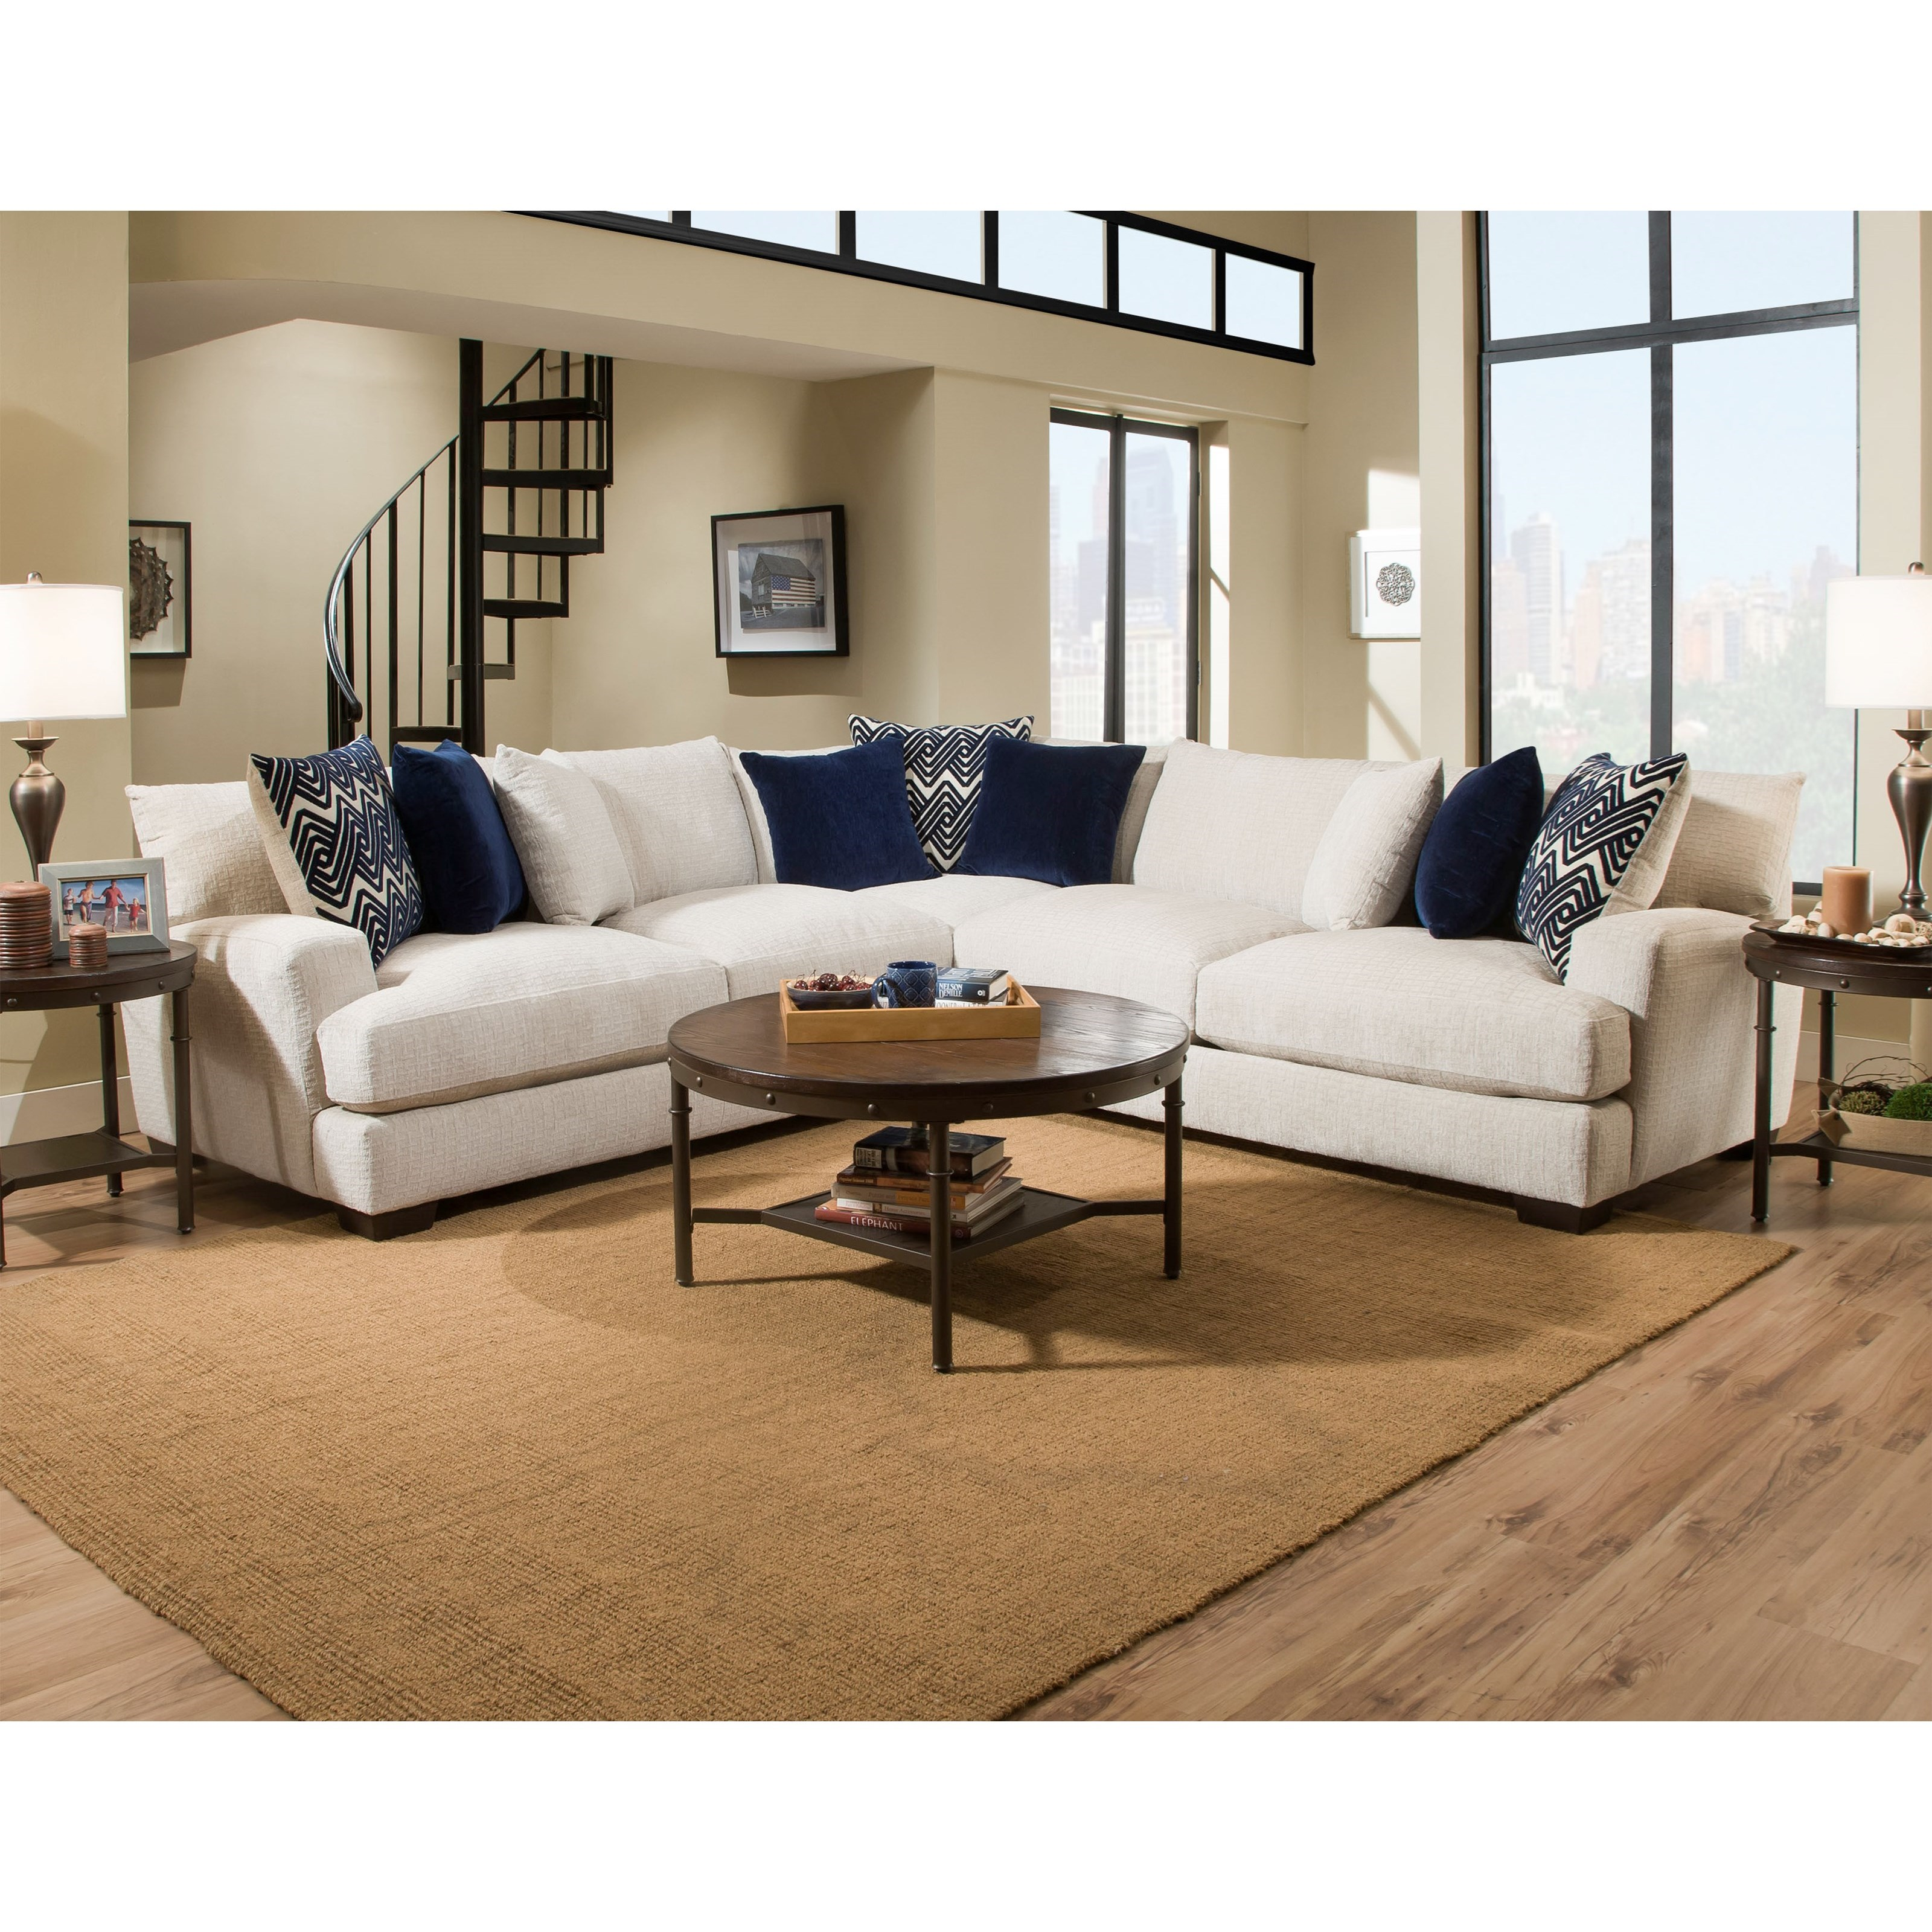 American Furniture 1600 4 Seat Sectional - Item Number: 1610+1604+1640-5440